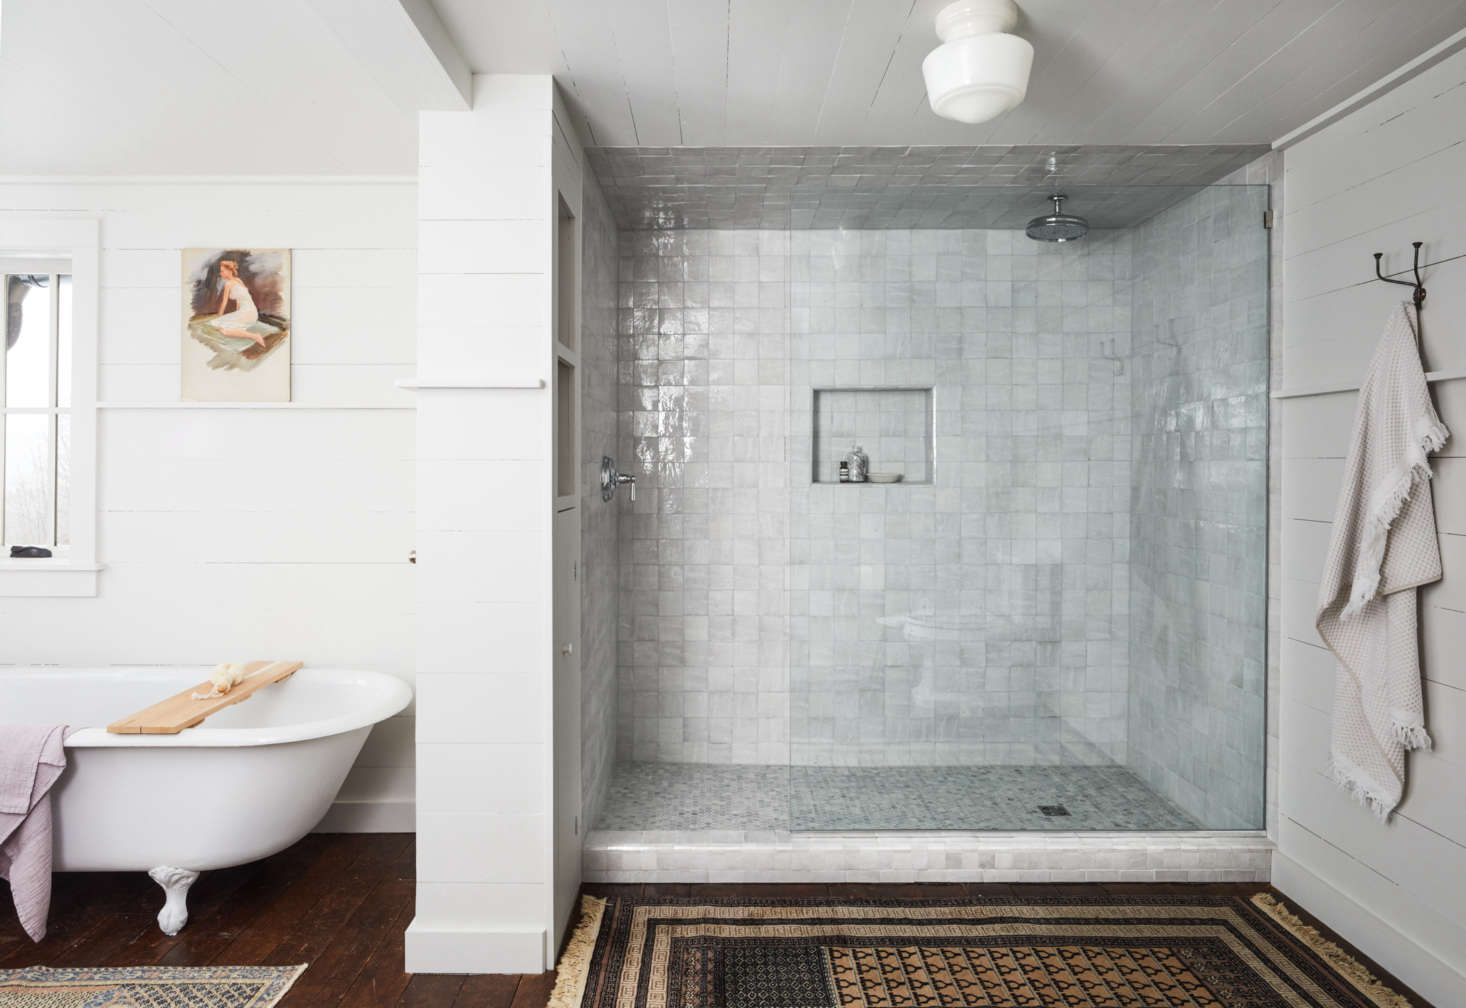 The master bathroom features a generous shower lined in Moroccan tile from Cle's Zellige Collection.